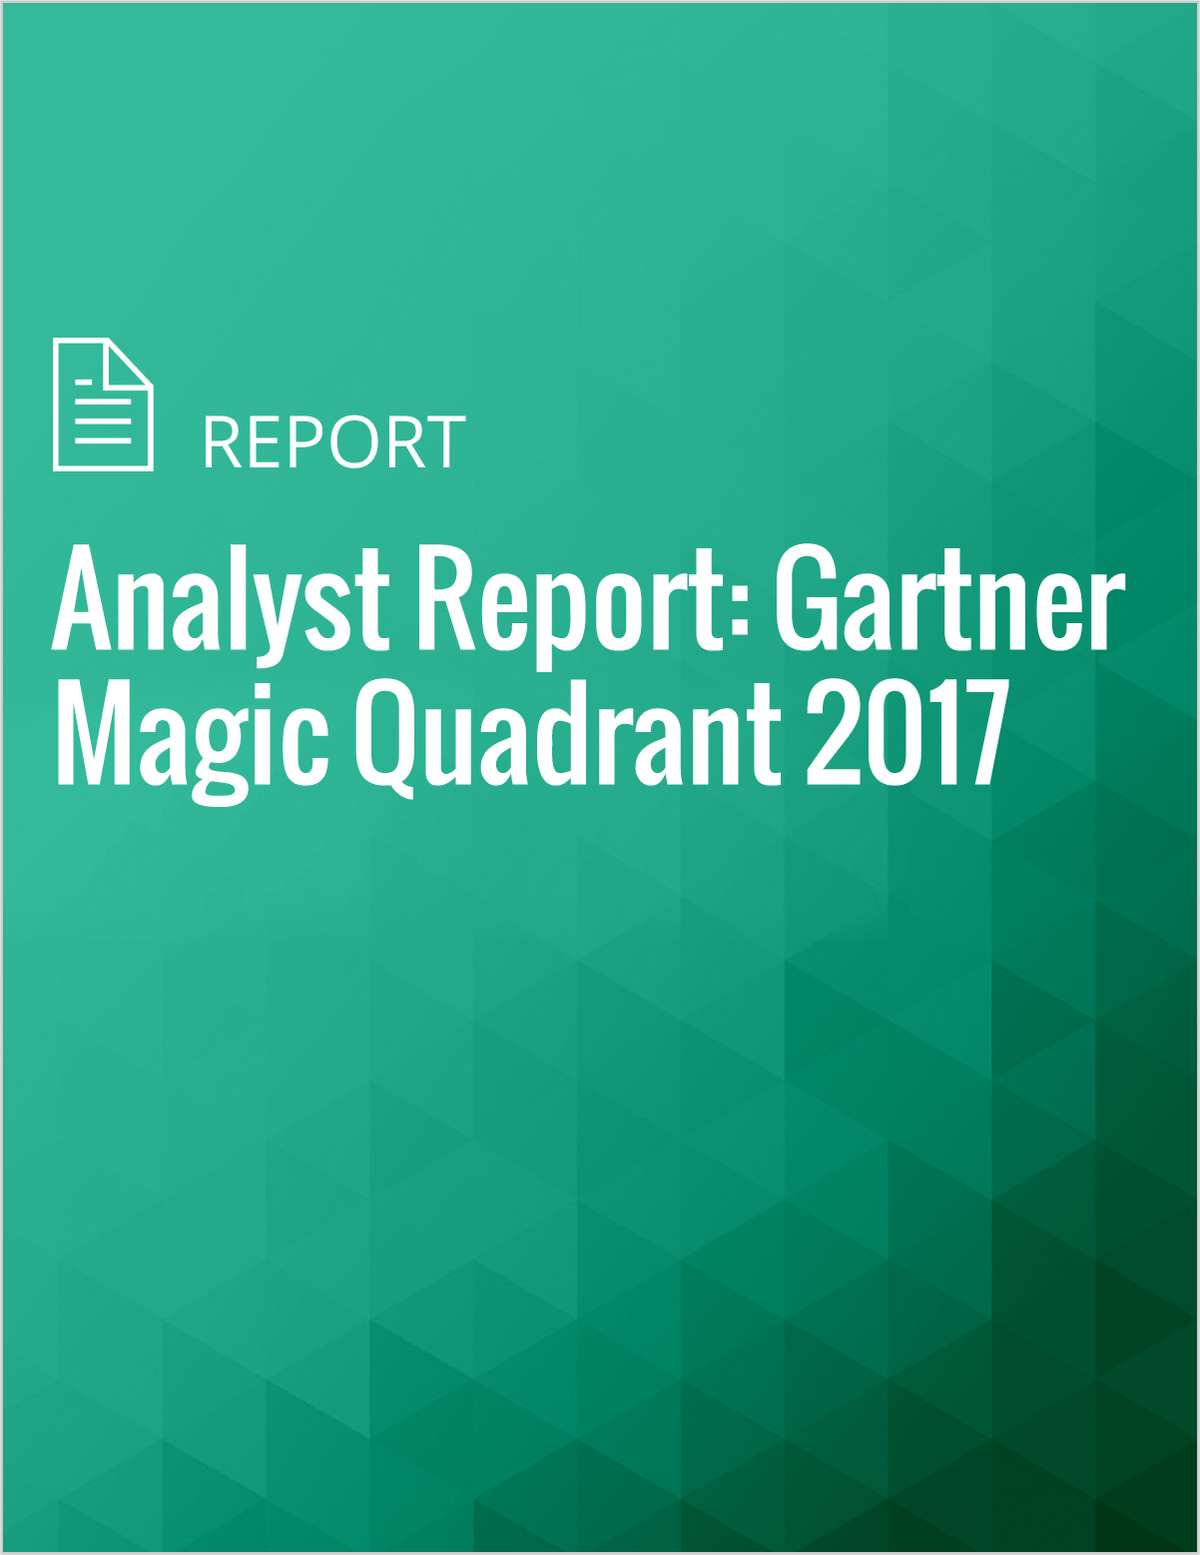 Analyst Report: Gartner Magic Quadrant 2017